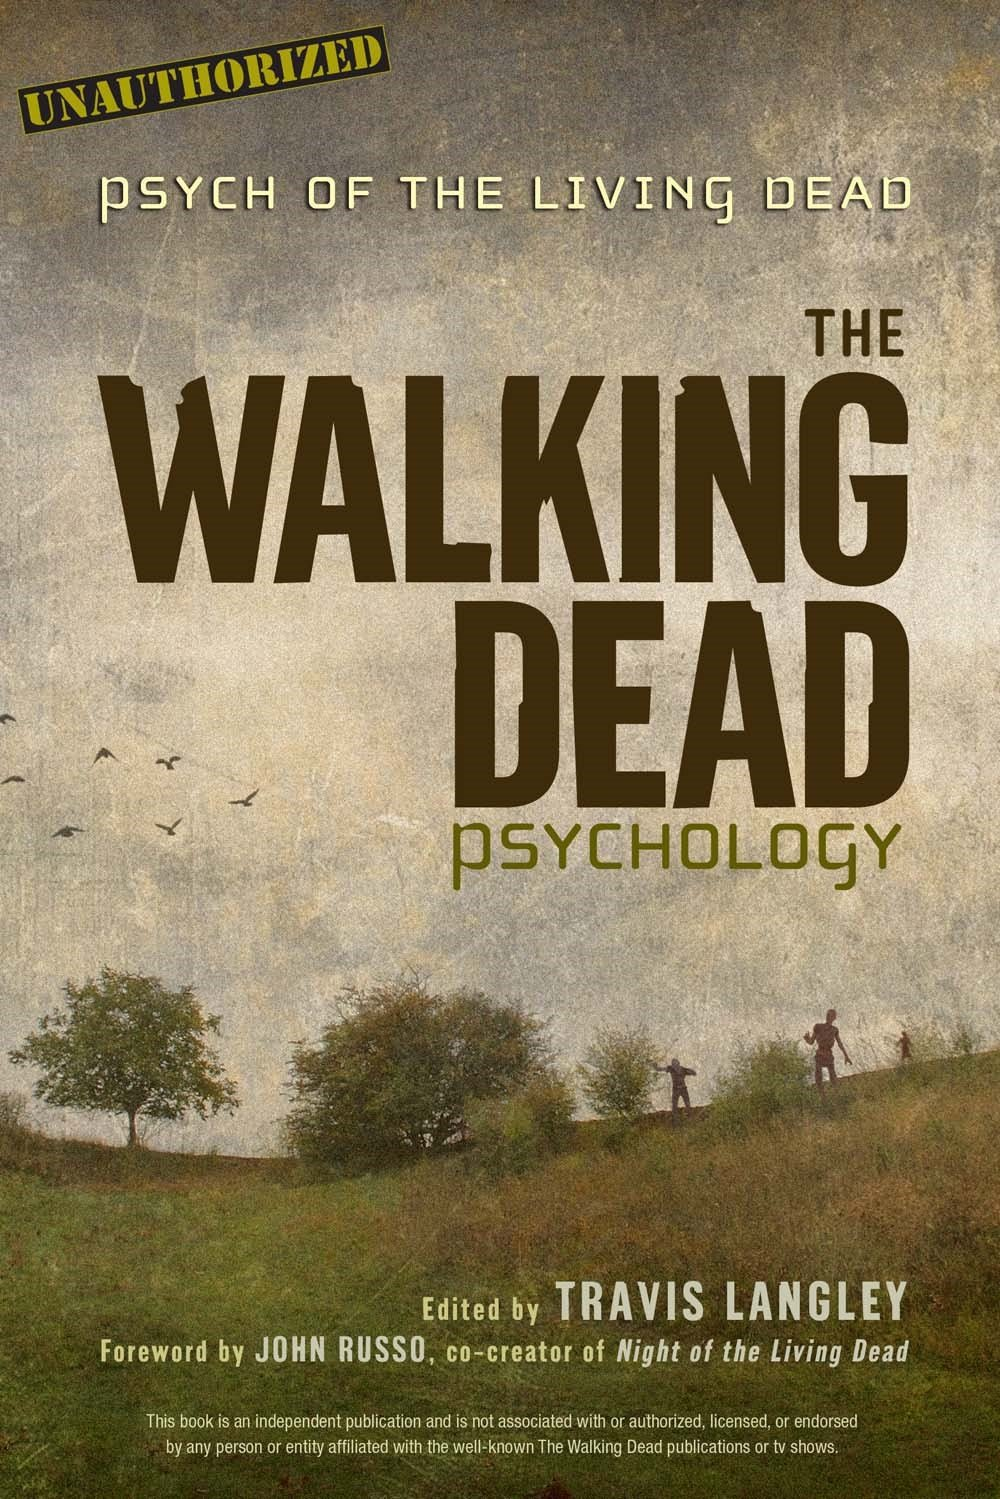 Amazon.com: The Walking Dead Psychology: Psych of the Living Dead ...